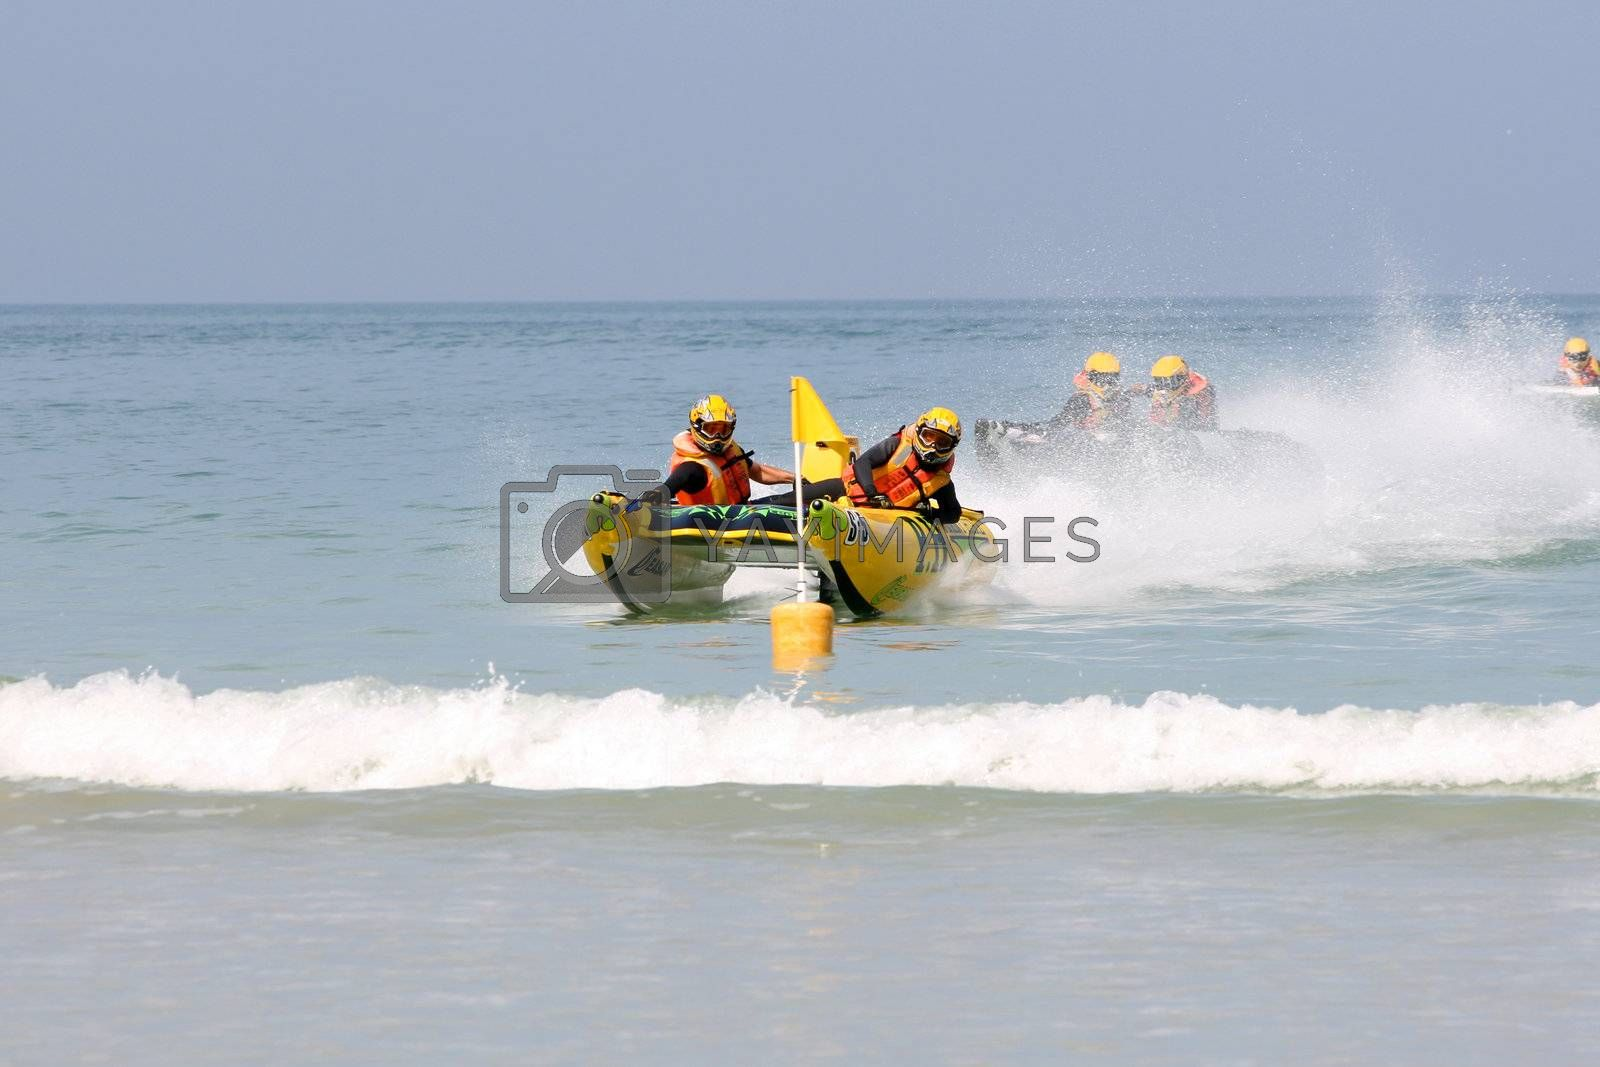 STRAND, RSA - OCTOBER 24: Western Cape regional heat for the inflatable boat race series on October 24, 2009 at Strand in the Western Cape Province, South Africa.